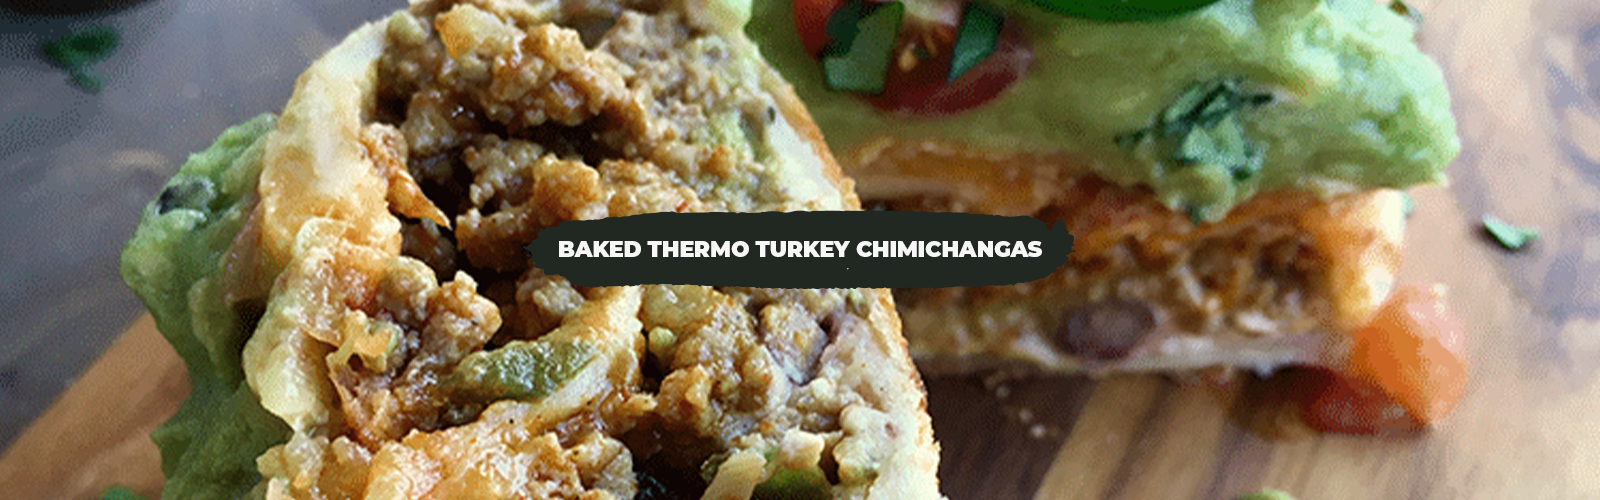 Baked Thermo Turkey Chimichangas